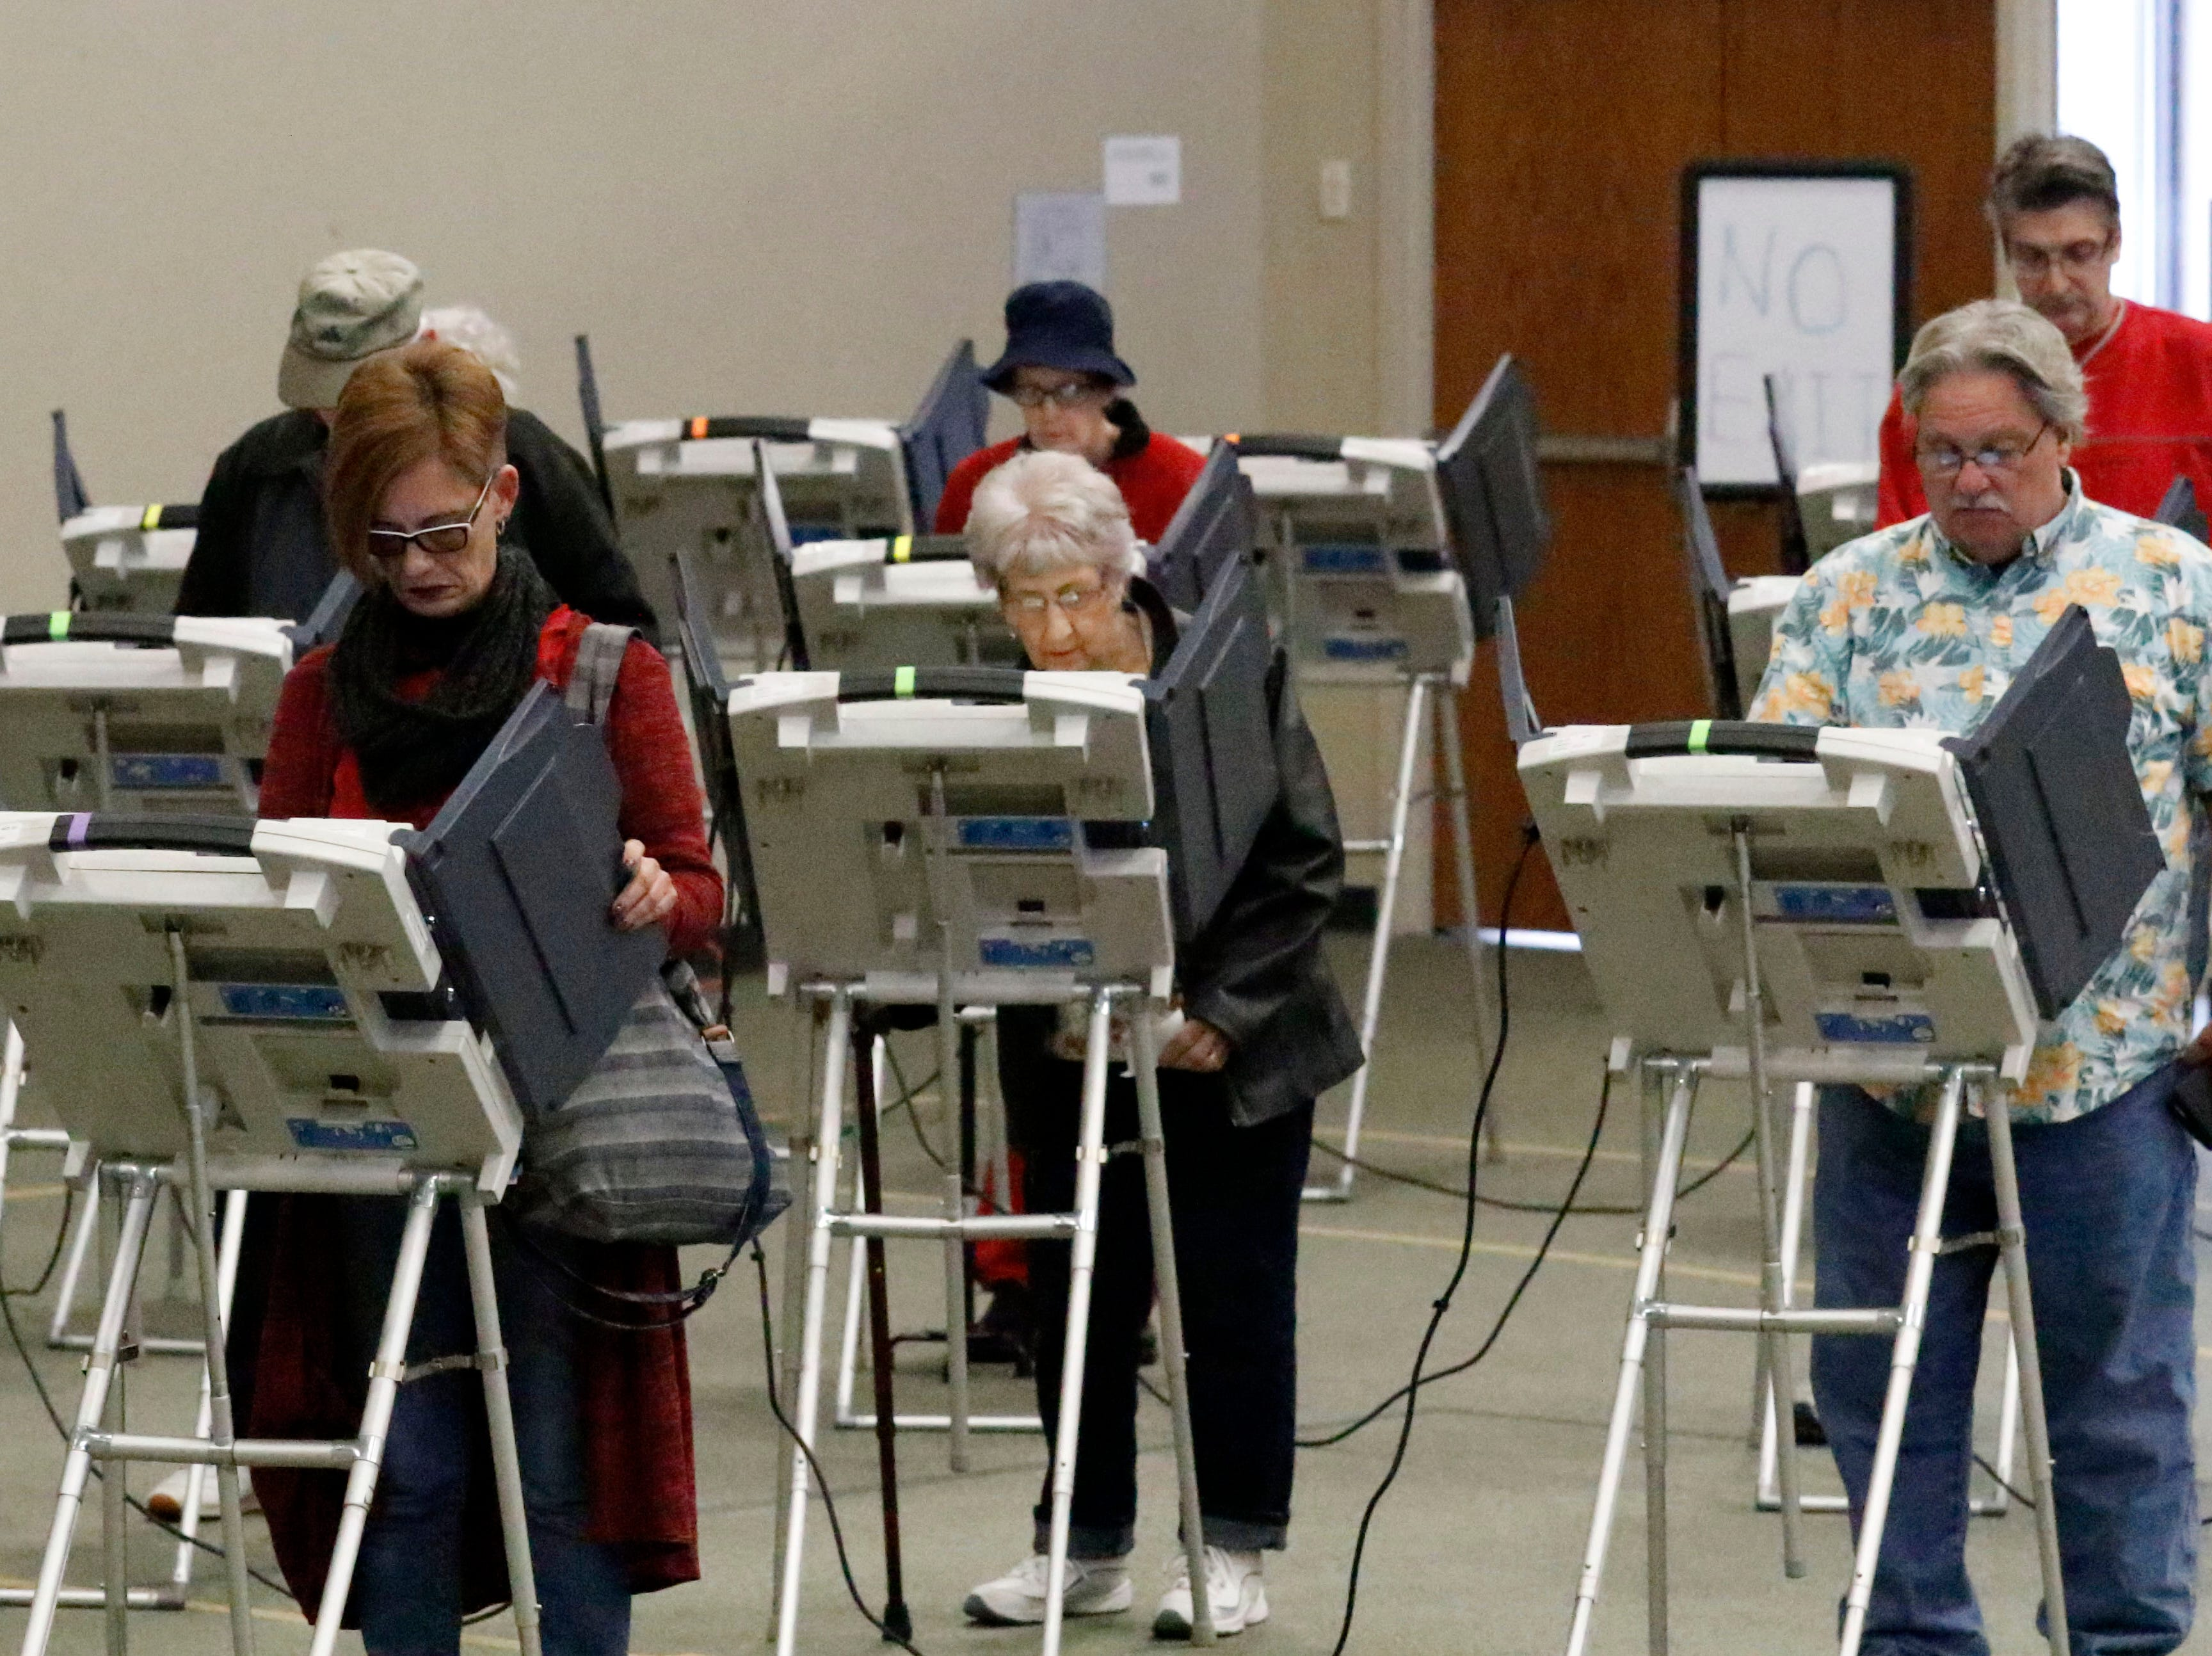 Voters cast their ballots Tuesday, Nov. 6, 2018, at the Crossroads Ministry Center in Lancaster.